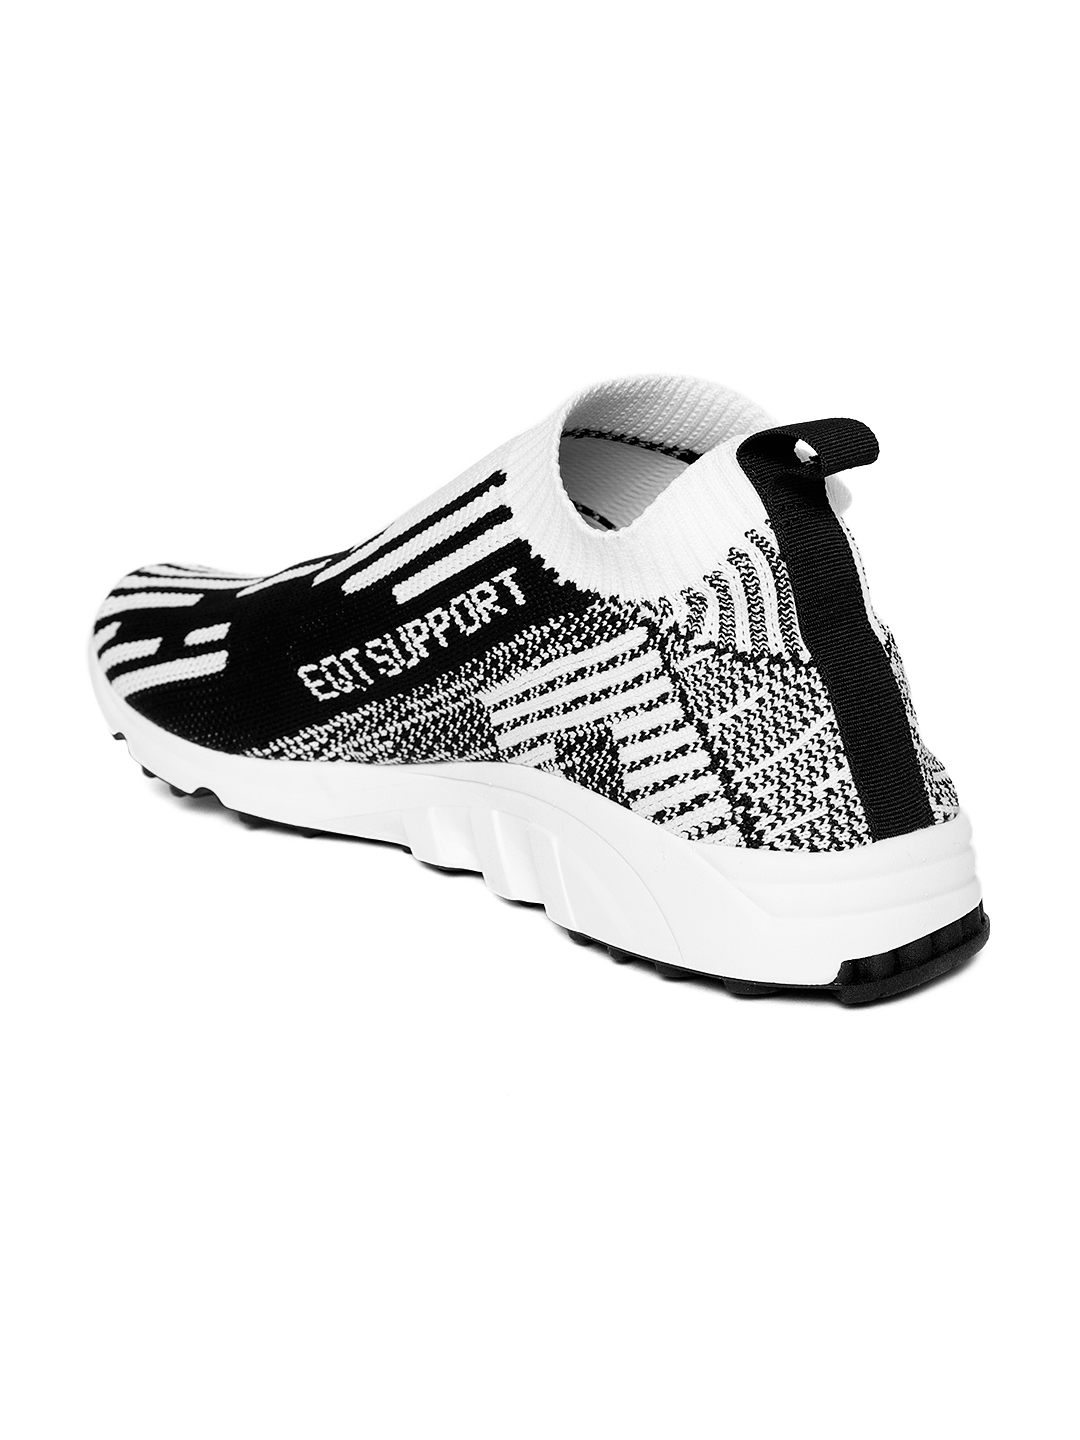 33123830030b ADIDAS Originals Men White   Black EQT Support SK PK Patterned Sneakers